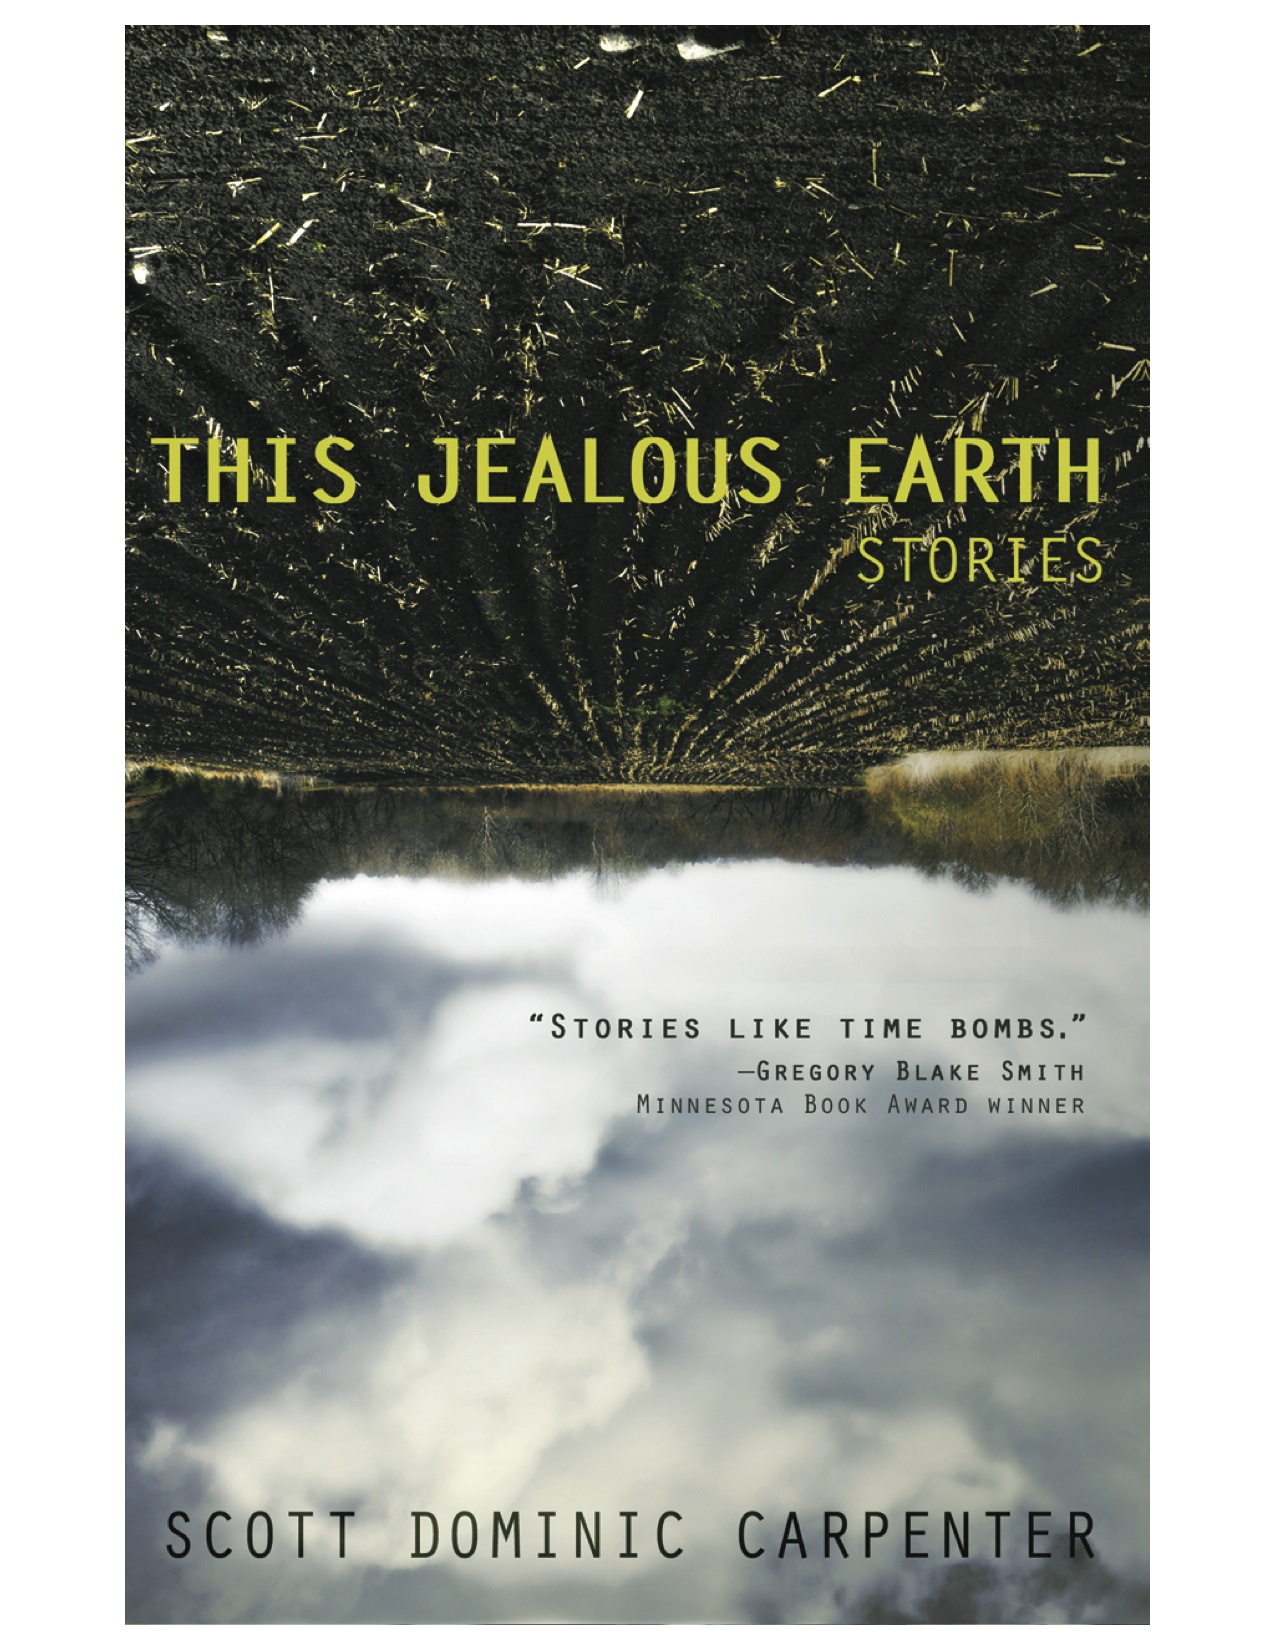 Intrigued by this cover image like me? Learn why  it was selected and placed upside down at the end of my review.